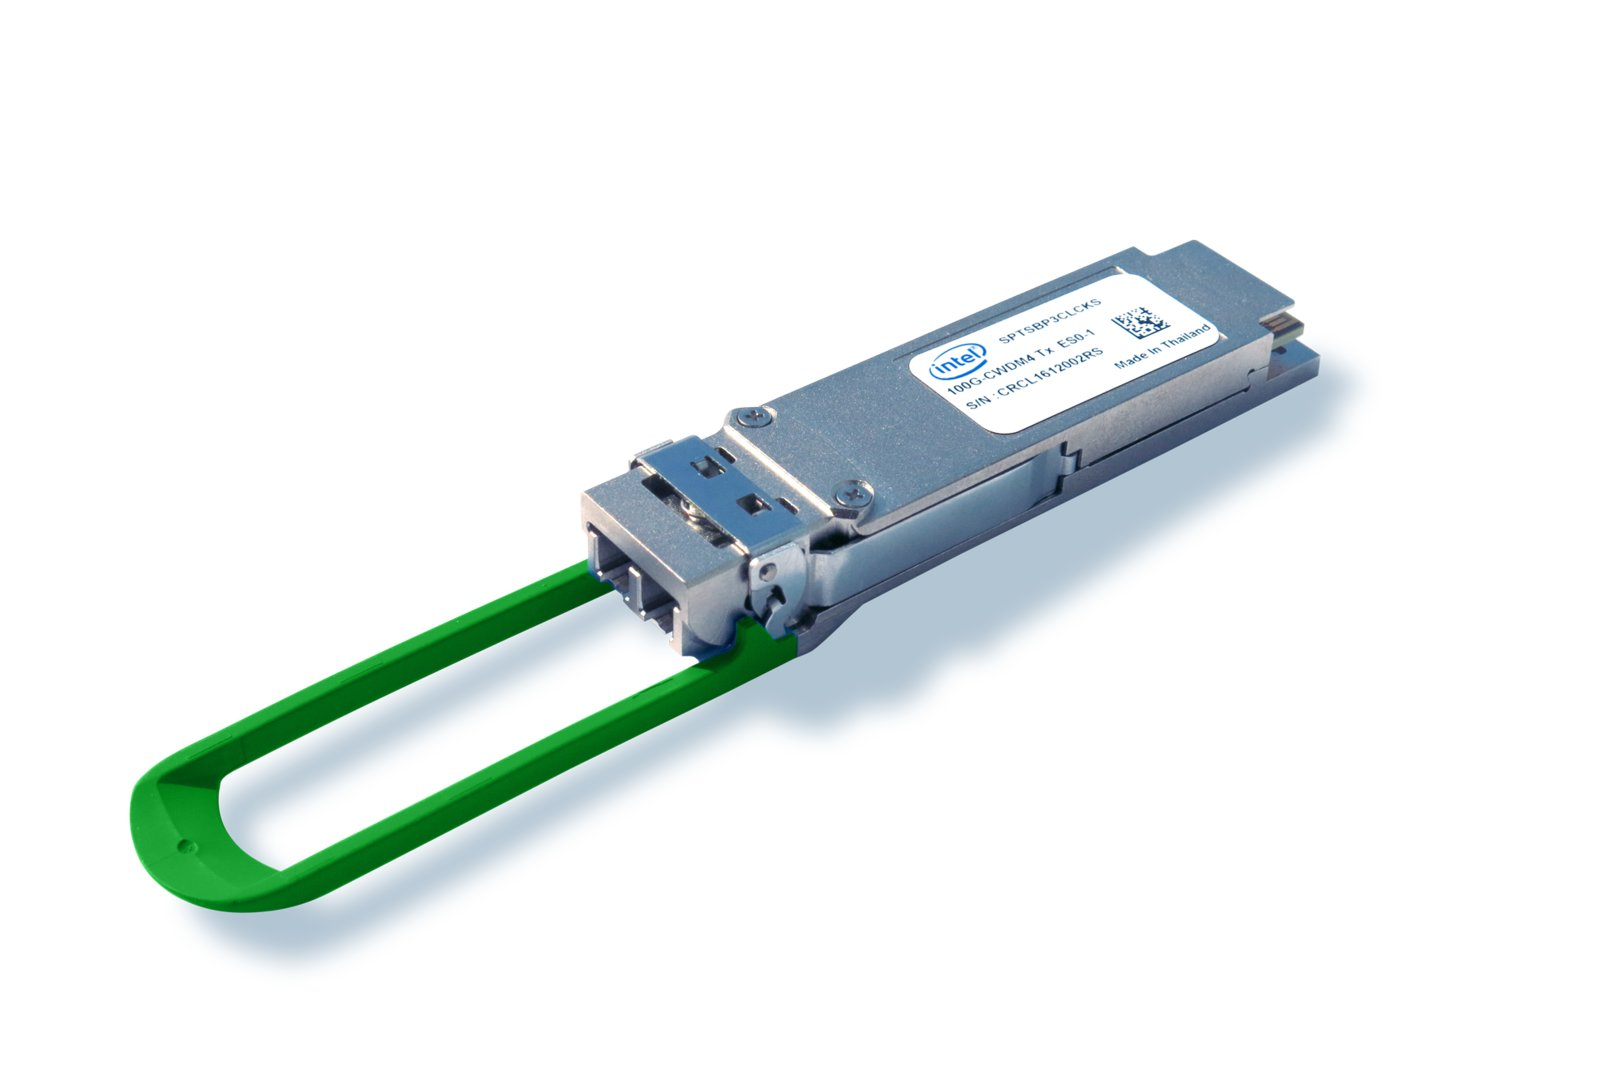 Intel Silicon Photonics 100G CWDM4 QSFP28 Optical Transceiver